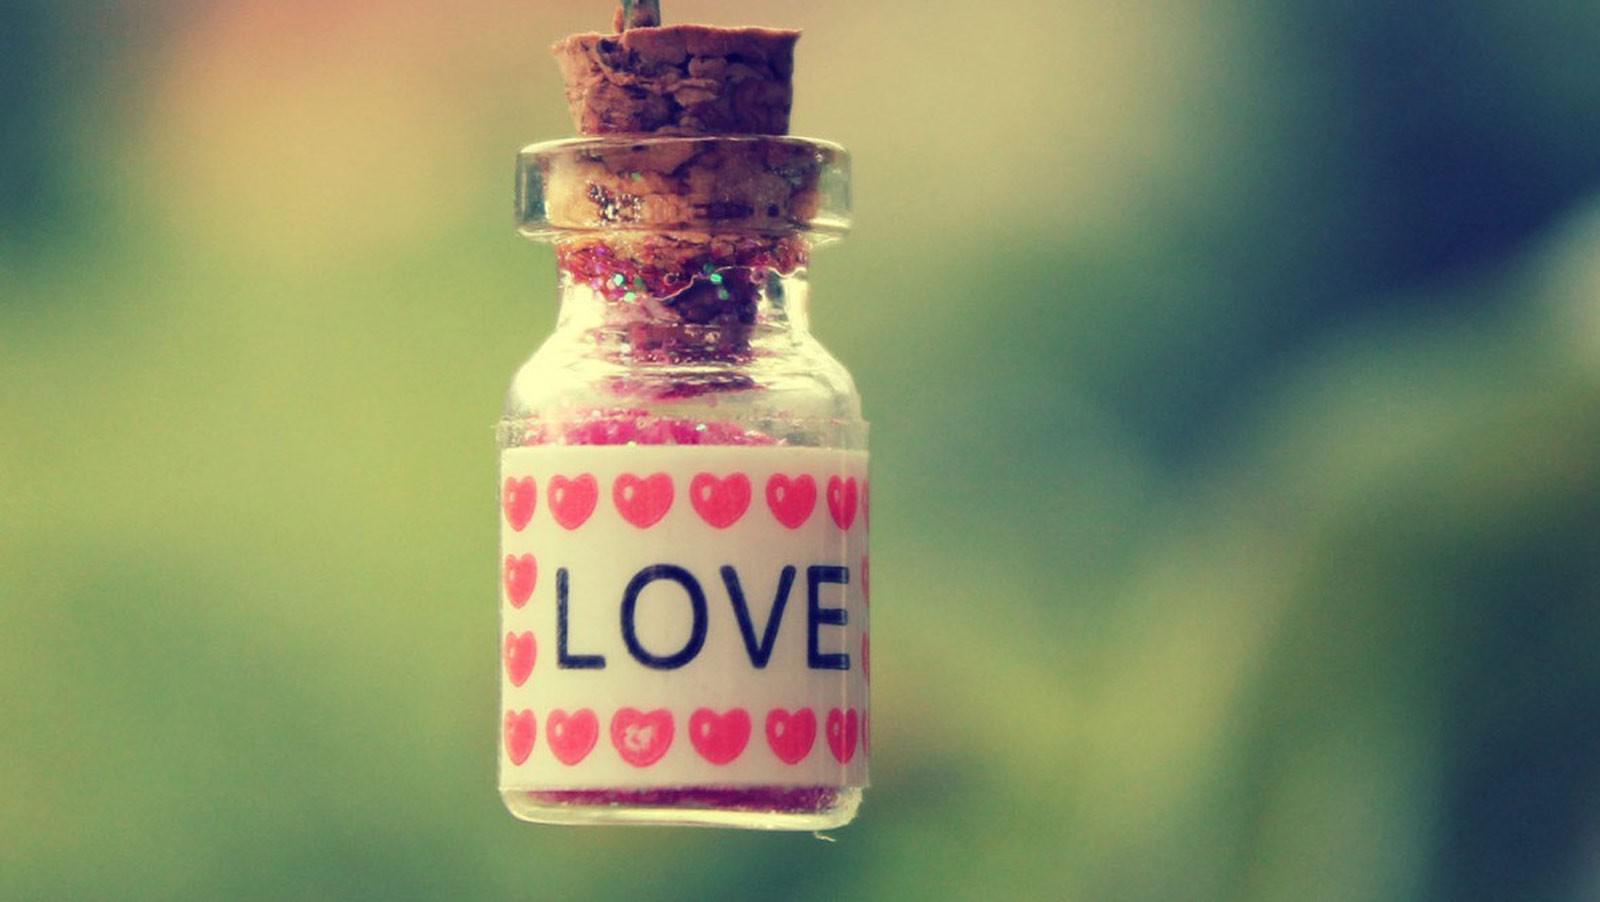 Love Potion Happy Valentine Days 2015 Wallpaper